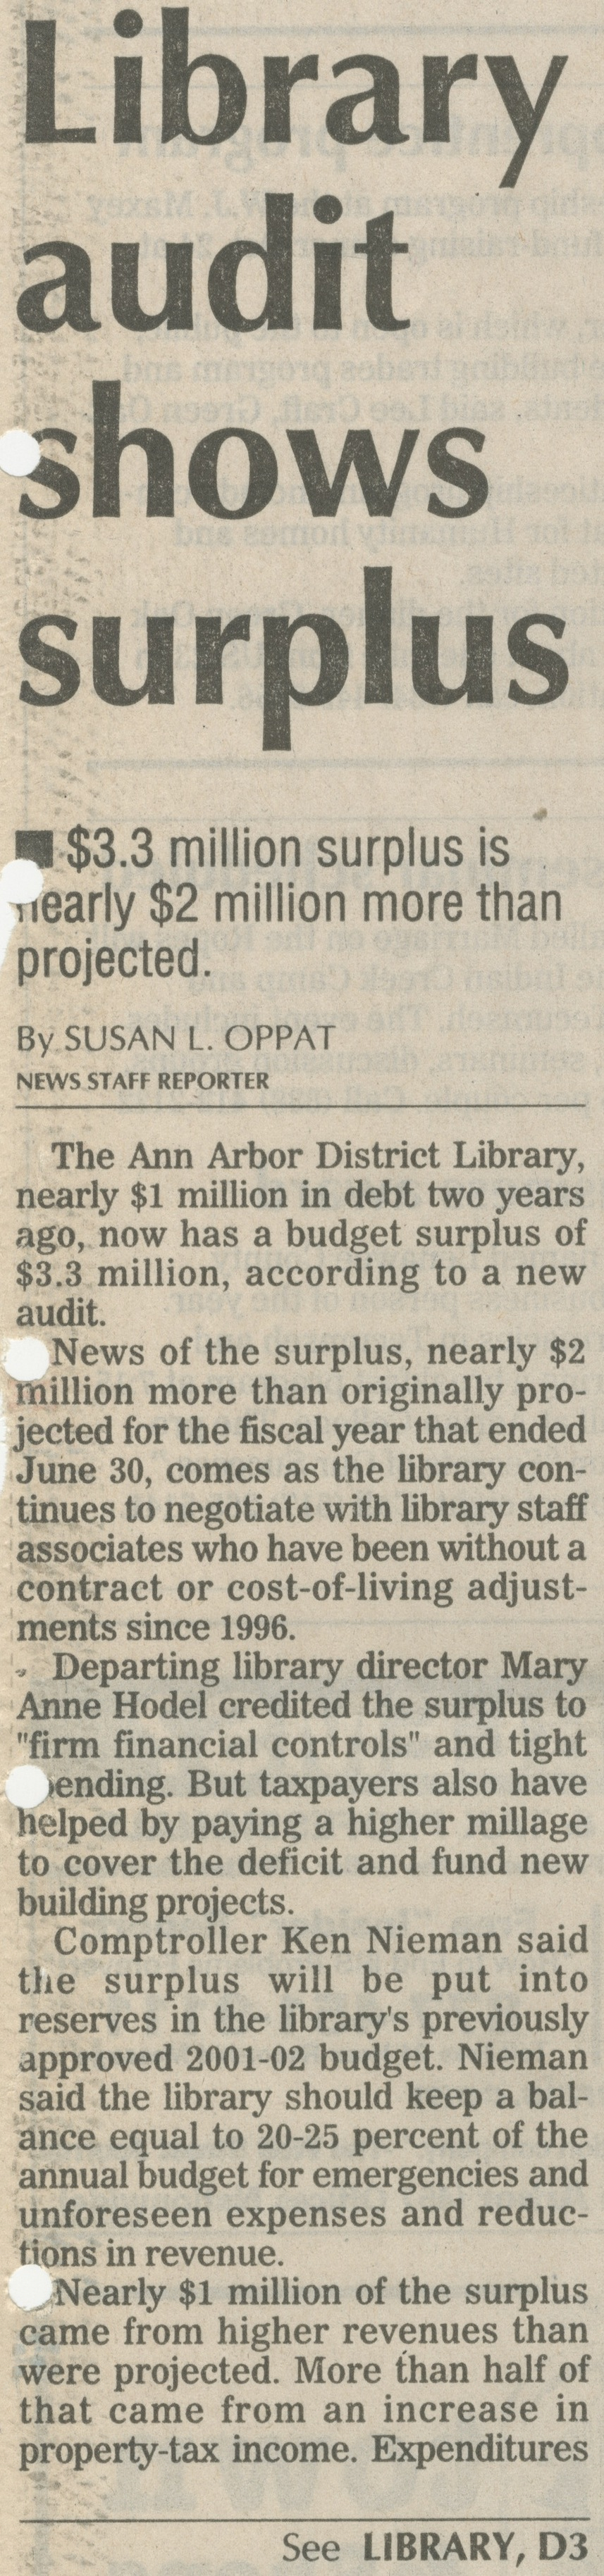 Library Audit Shows Surplus image